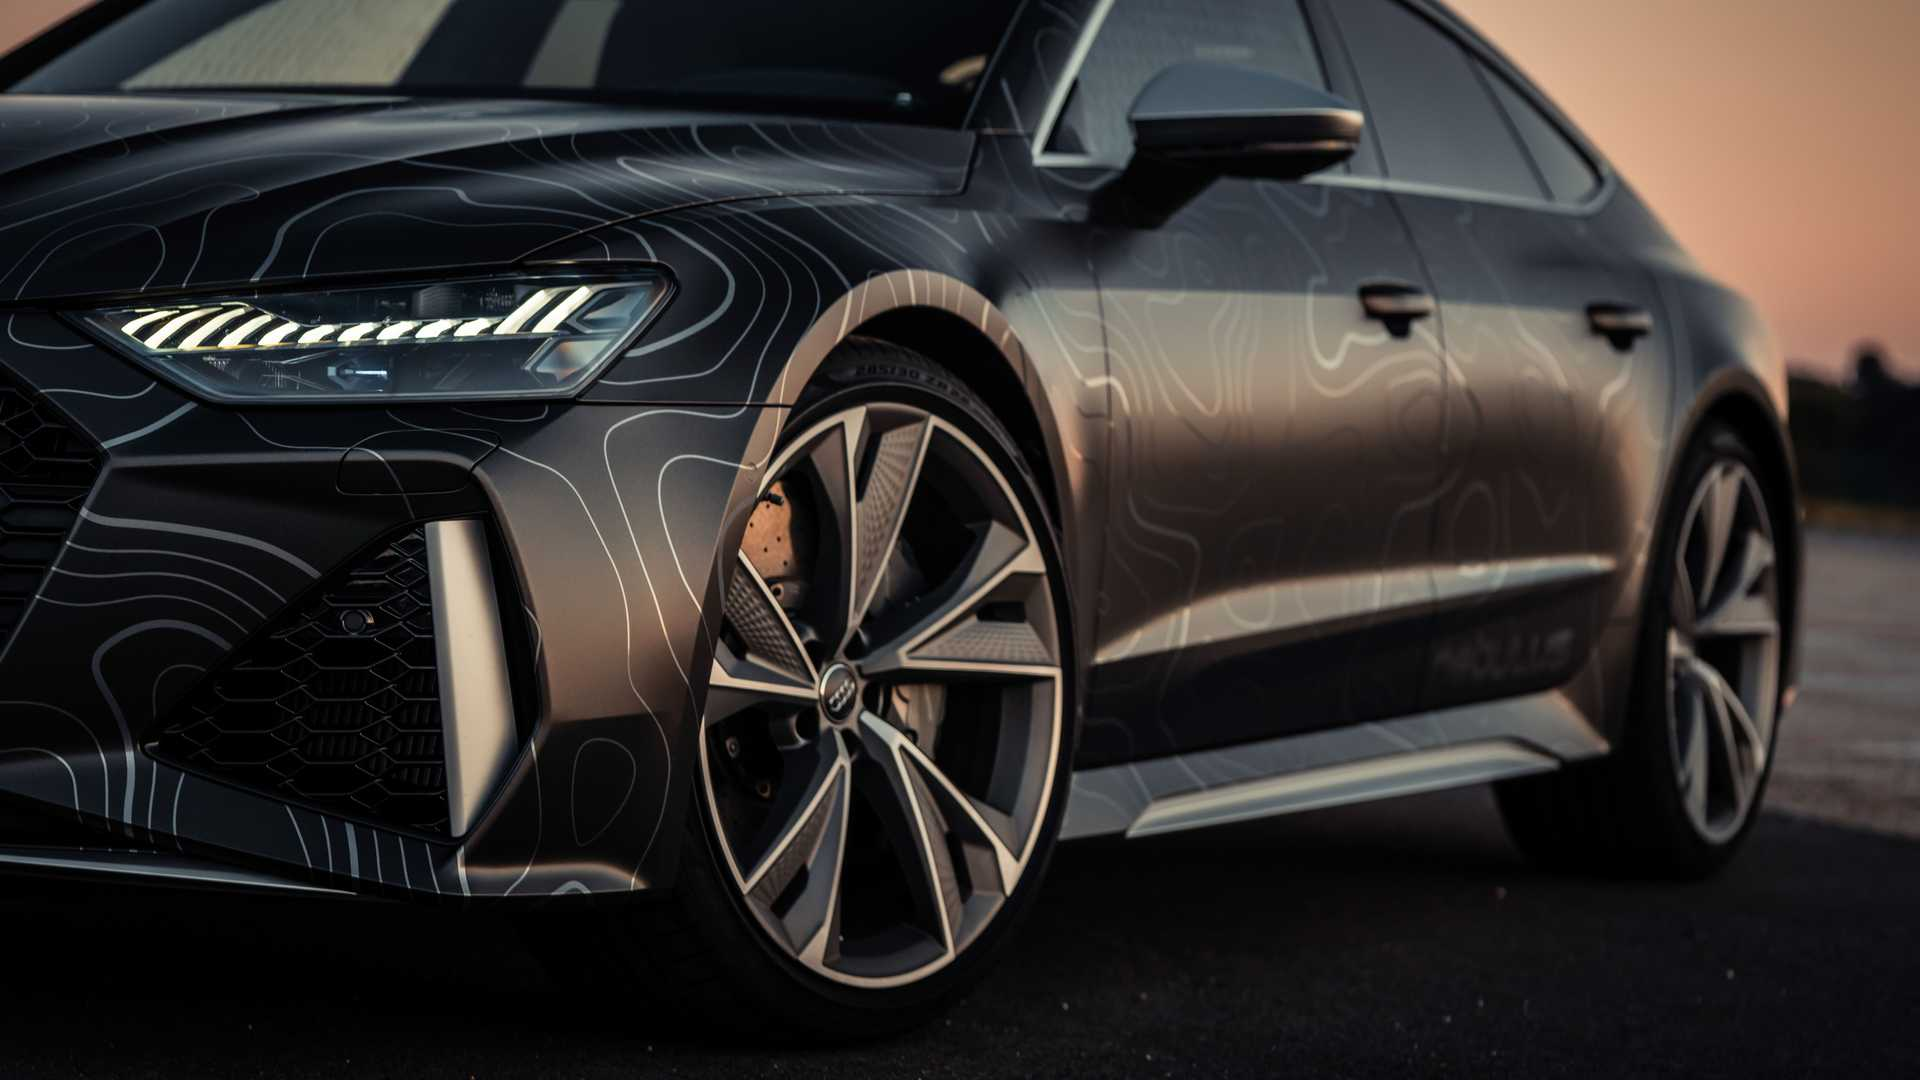 udi RS7 By Black Box-Richter With 962HP